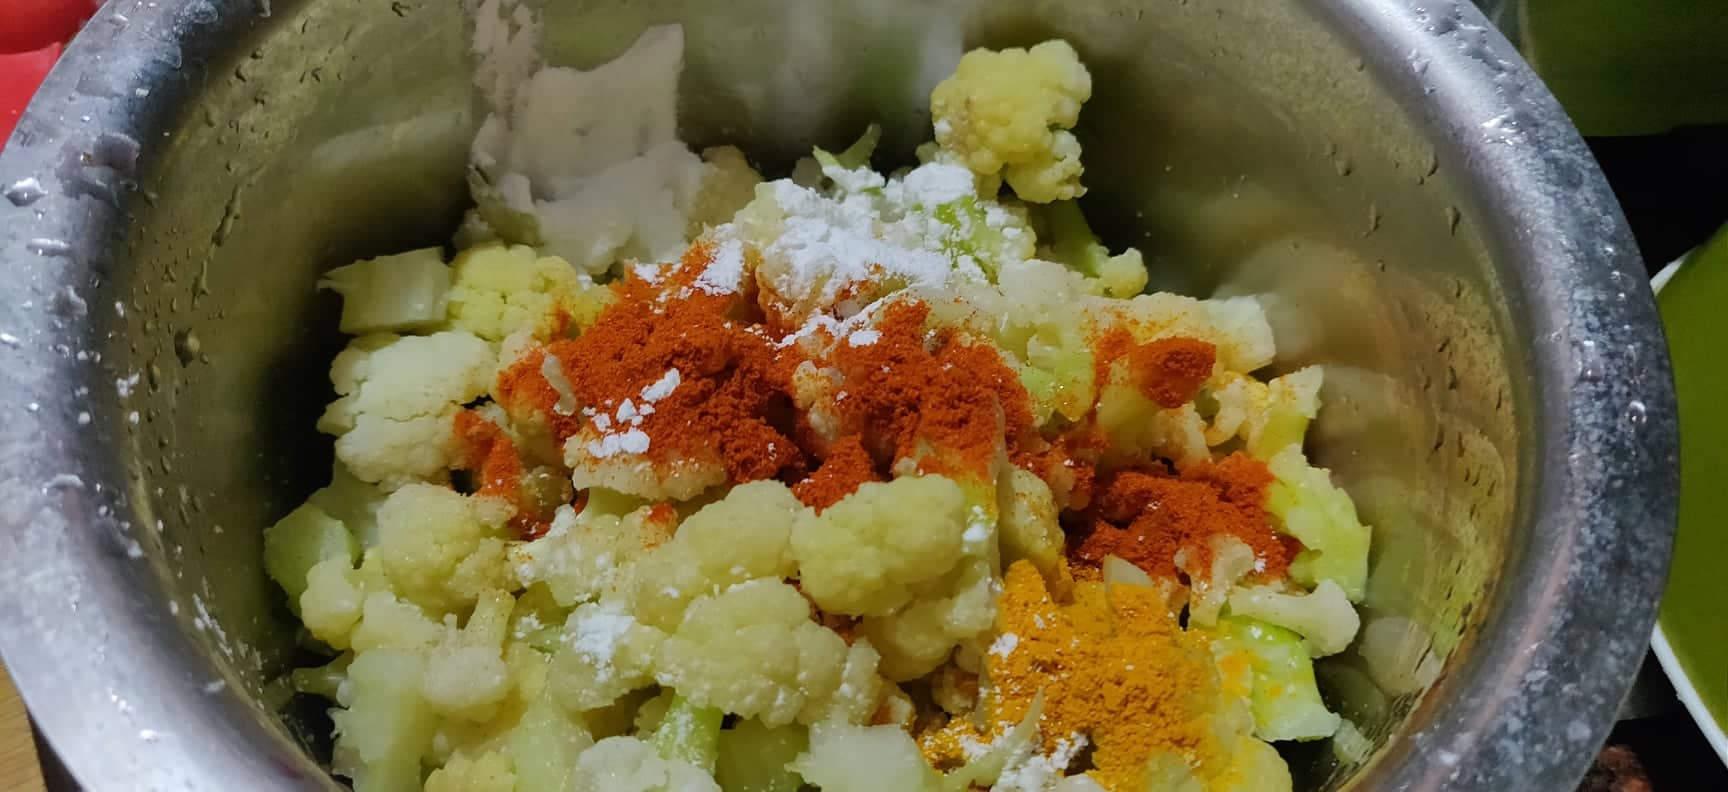 cauliflower_stir_fry - 83883329_226135265057977_5498820502782738432_n